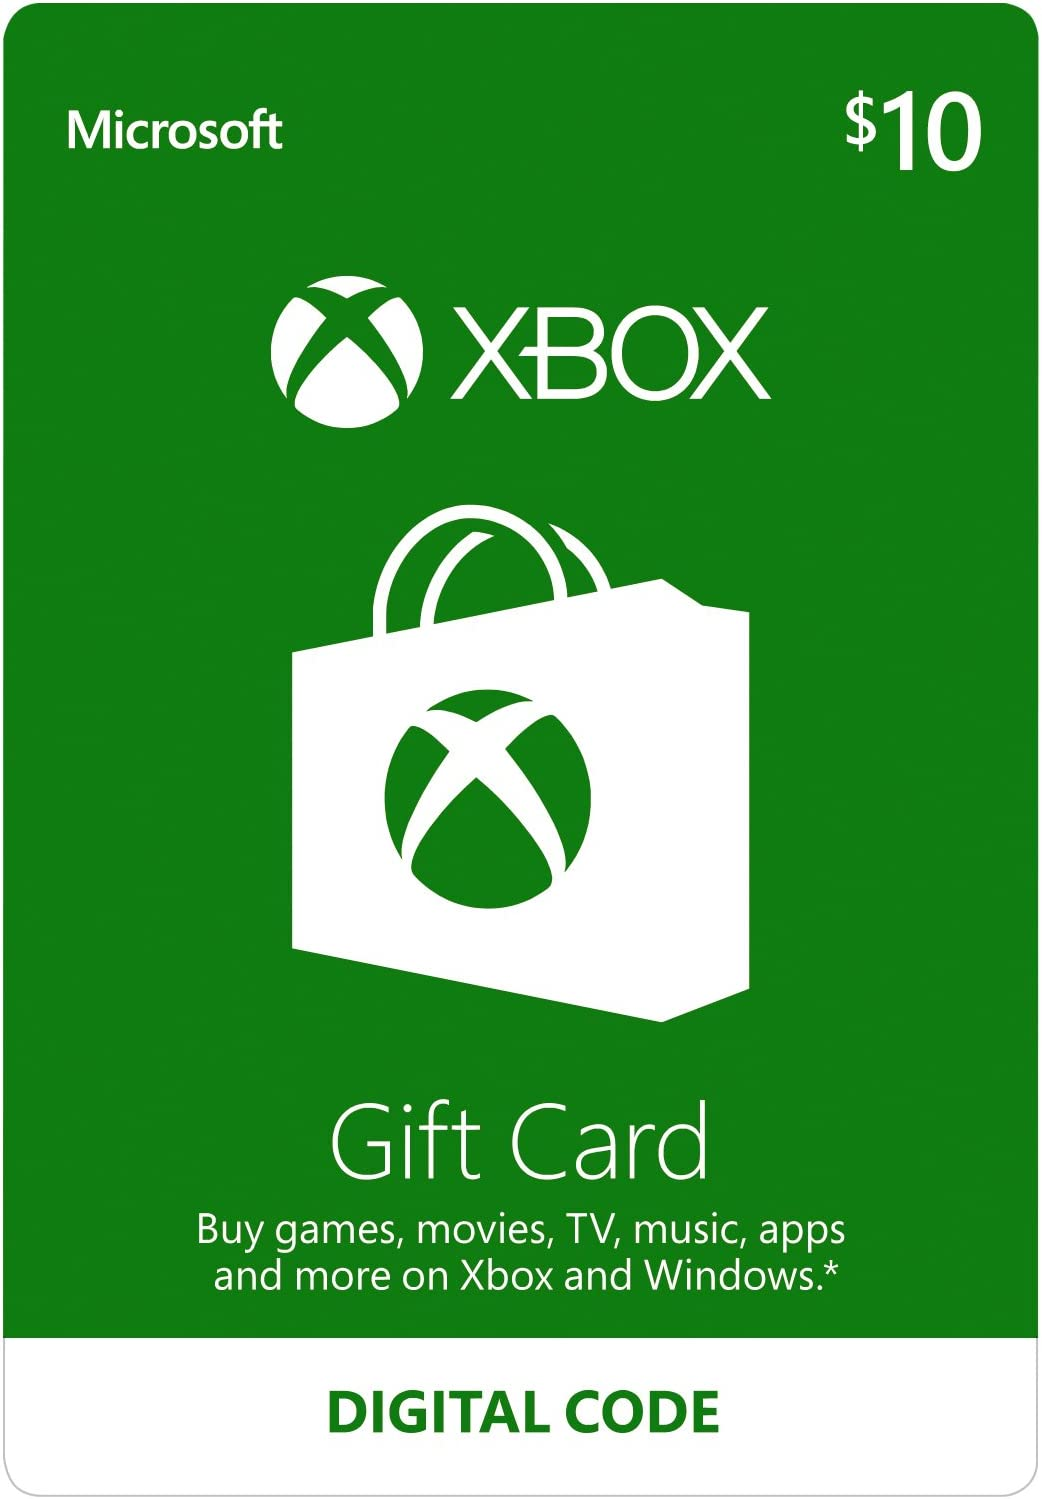 Amazon.com: $50 Xbox Gift Card [Digital Code]: Video Games